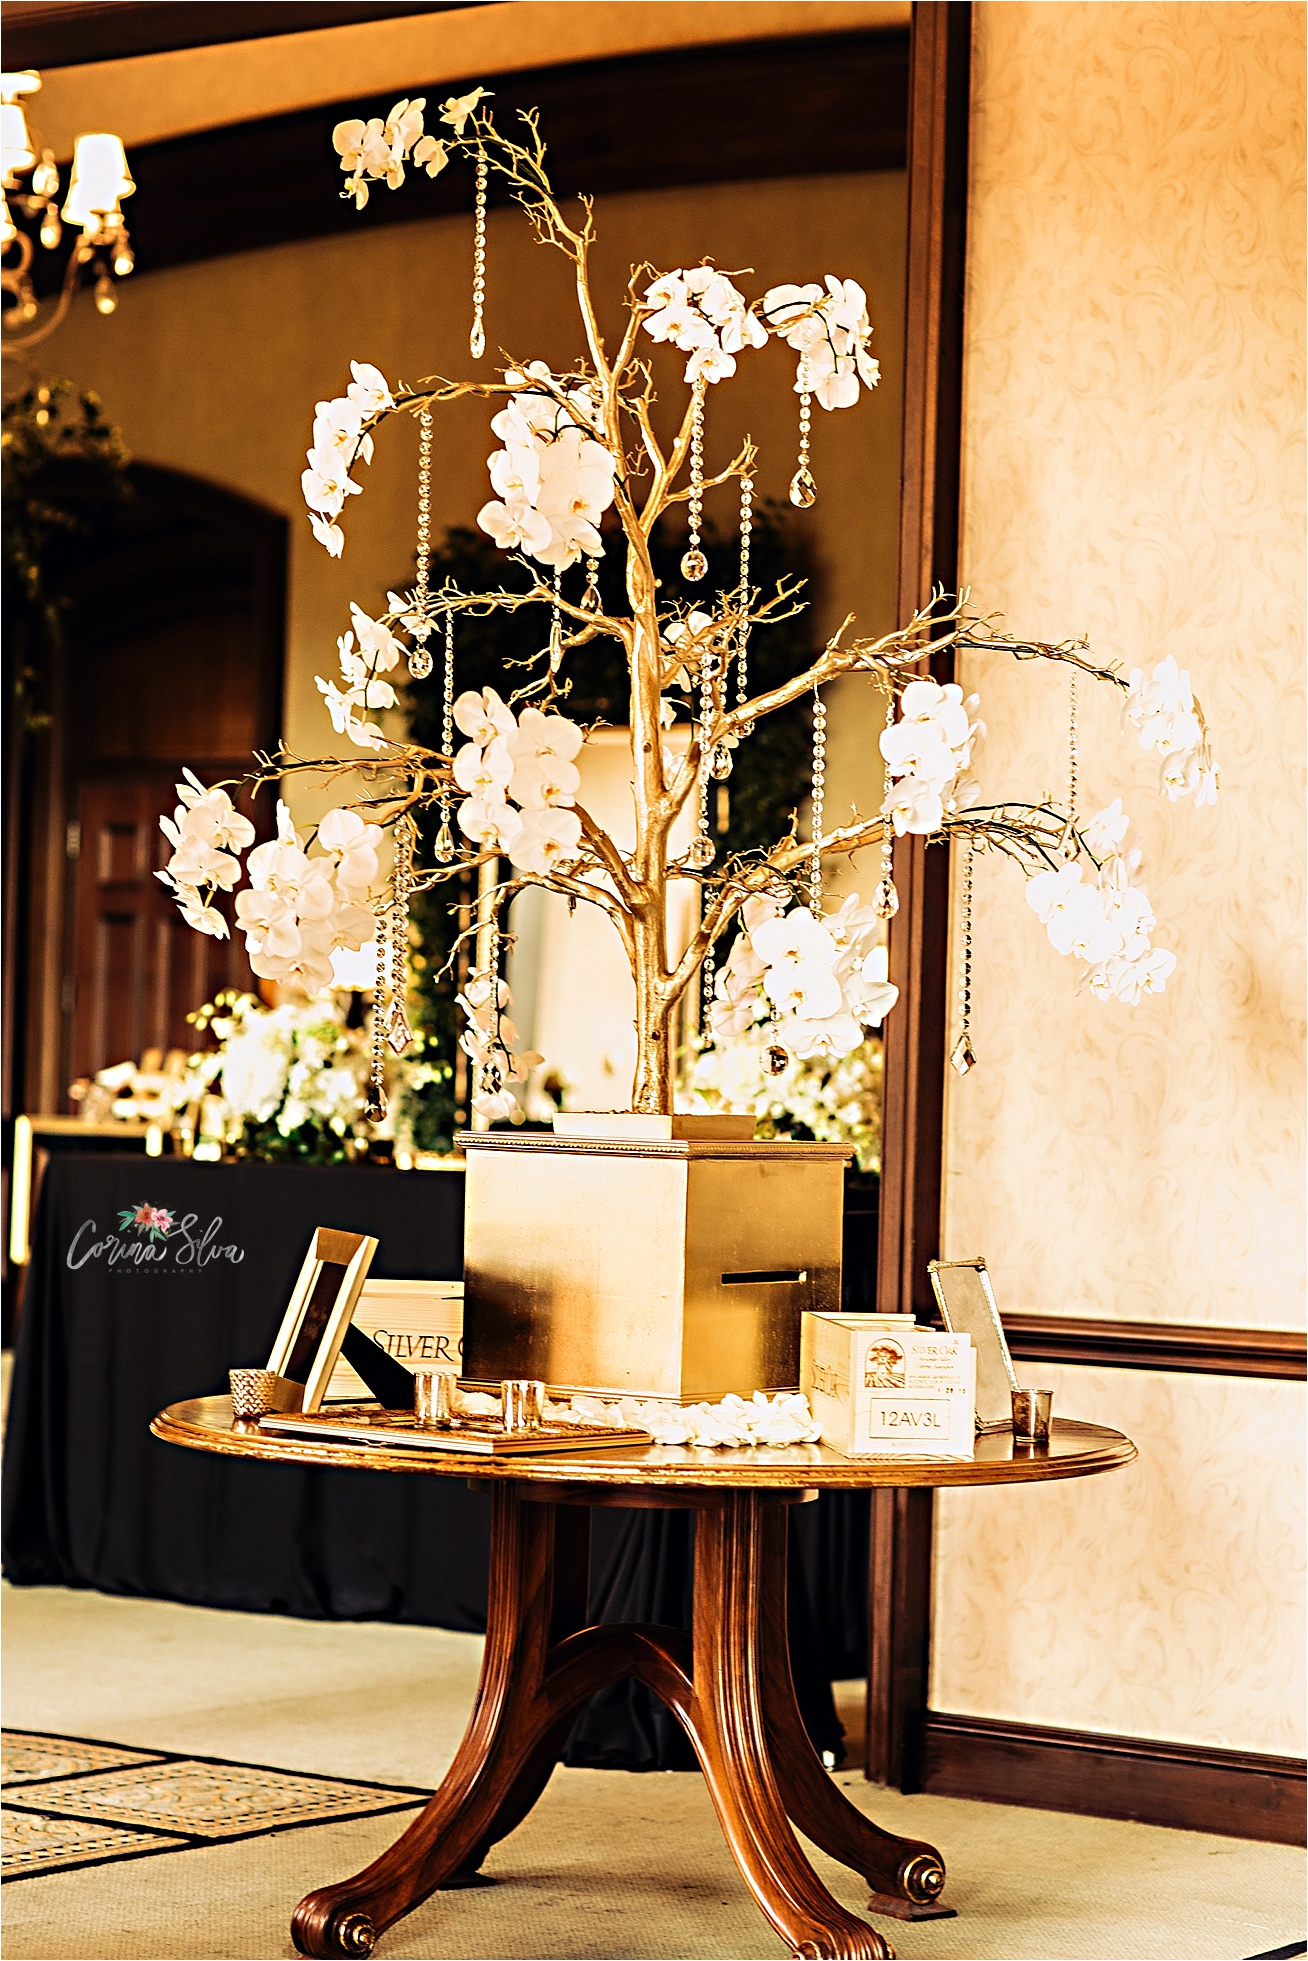 RSG-Event-and-Designs-luxury-wedding-decor-photos, Corina-Silva-Studios_0005.jpg